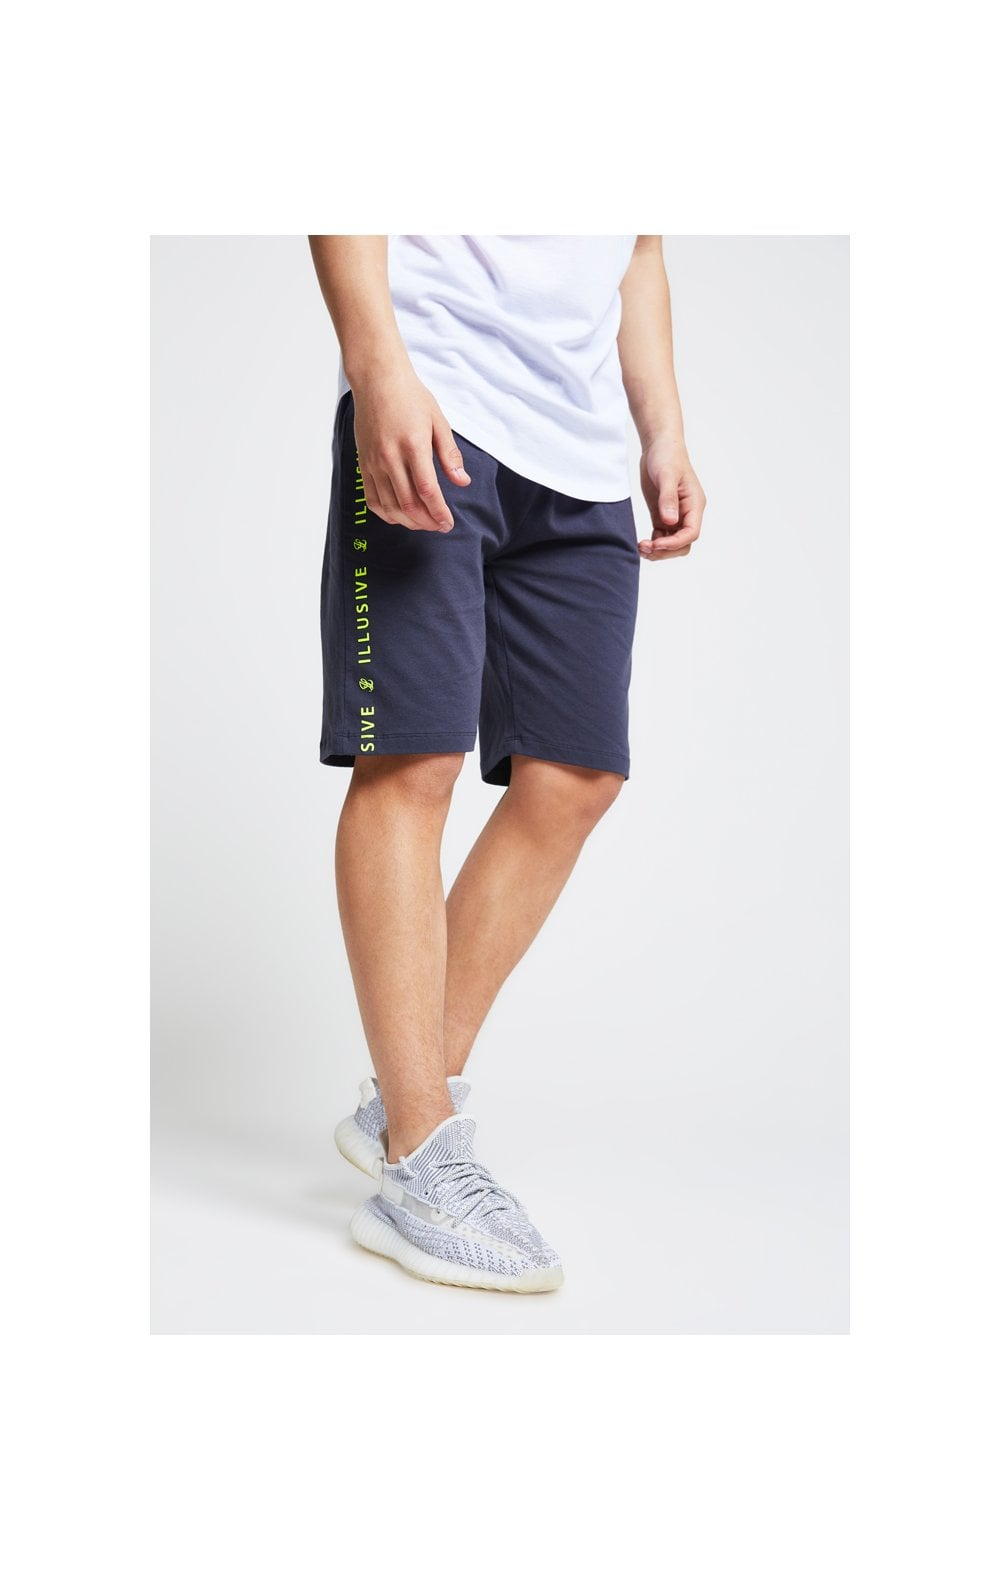 Illusive London Shorts Jersey - Grau und Neongelb (1)